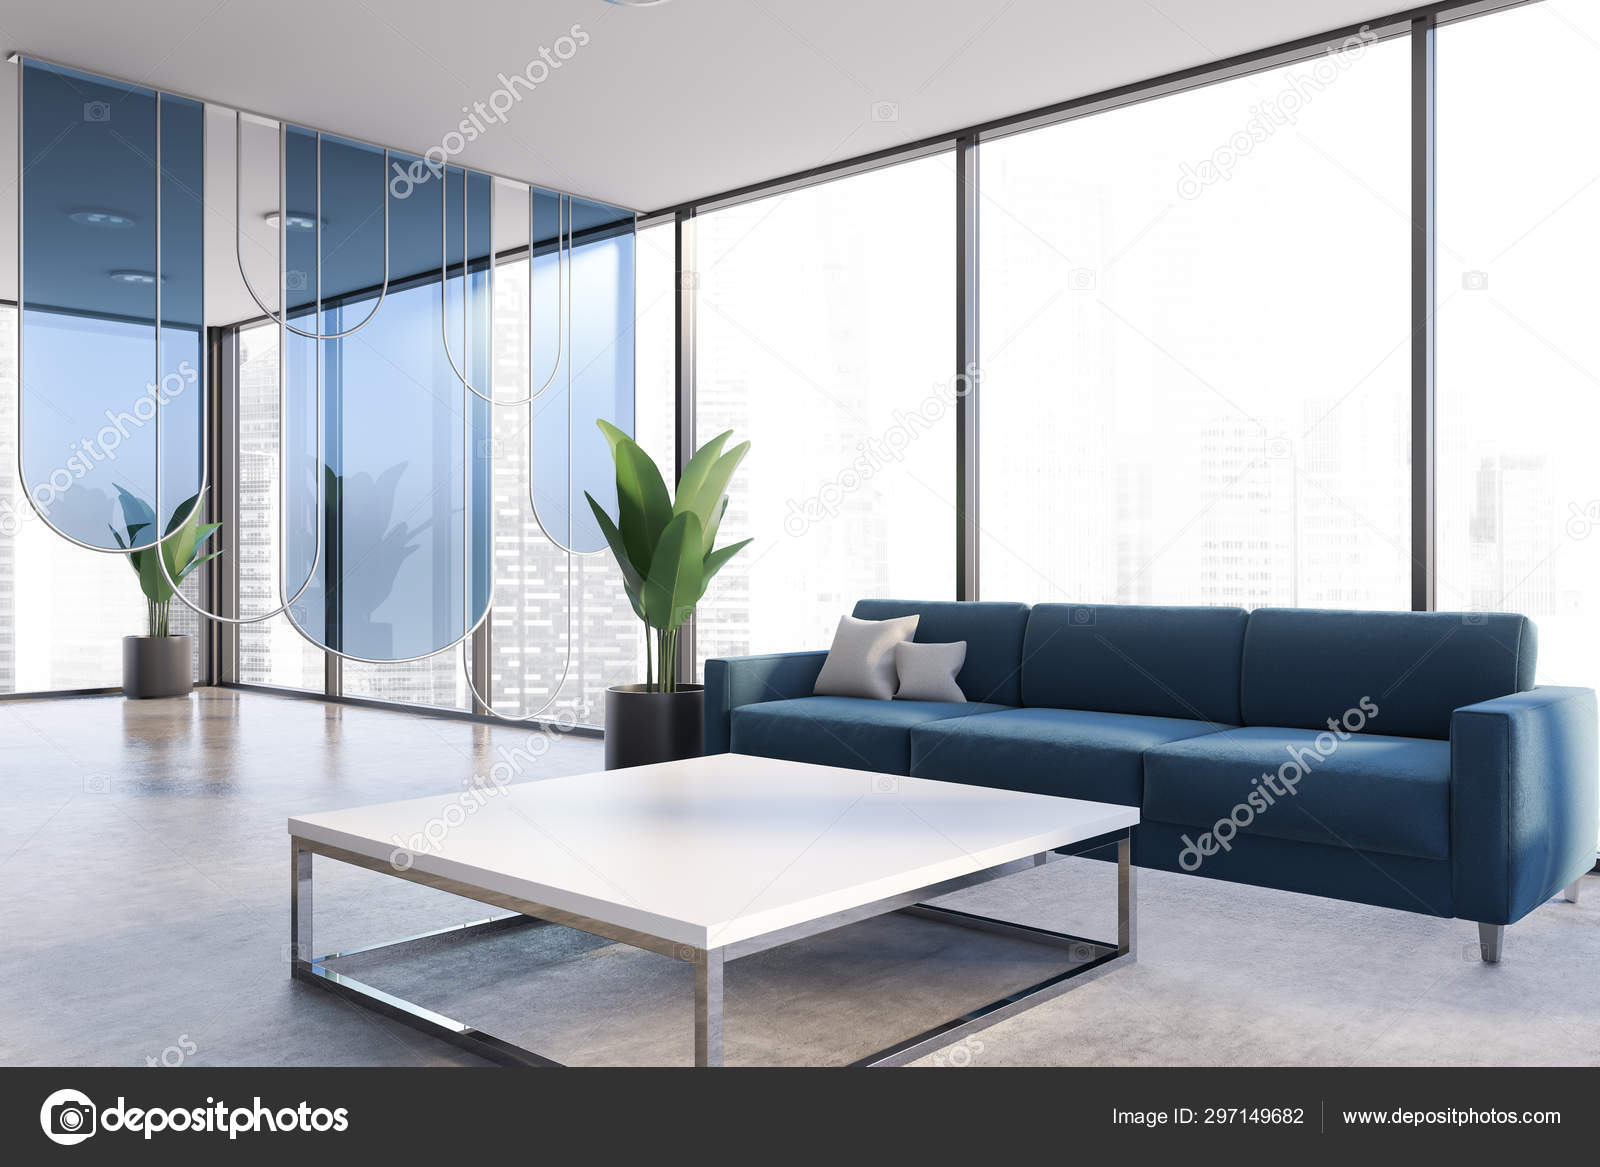 Picture of: Panoramic Office Lounge Area With Blue Couch Stock Photo C Denisismagilov 297149682